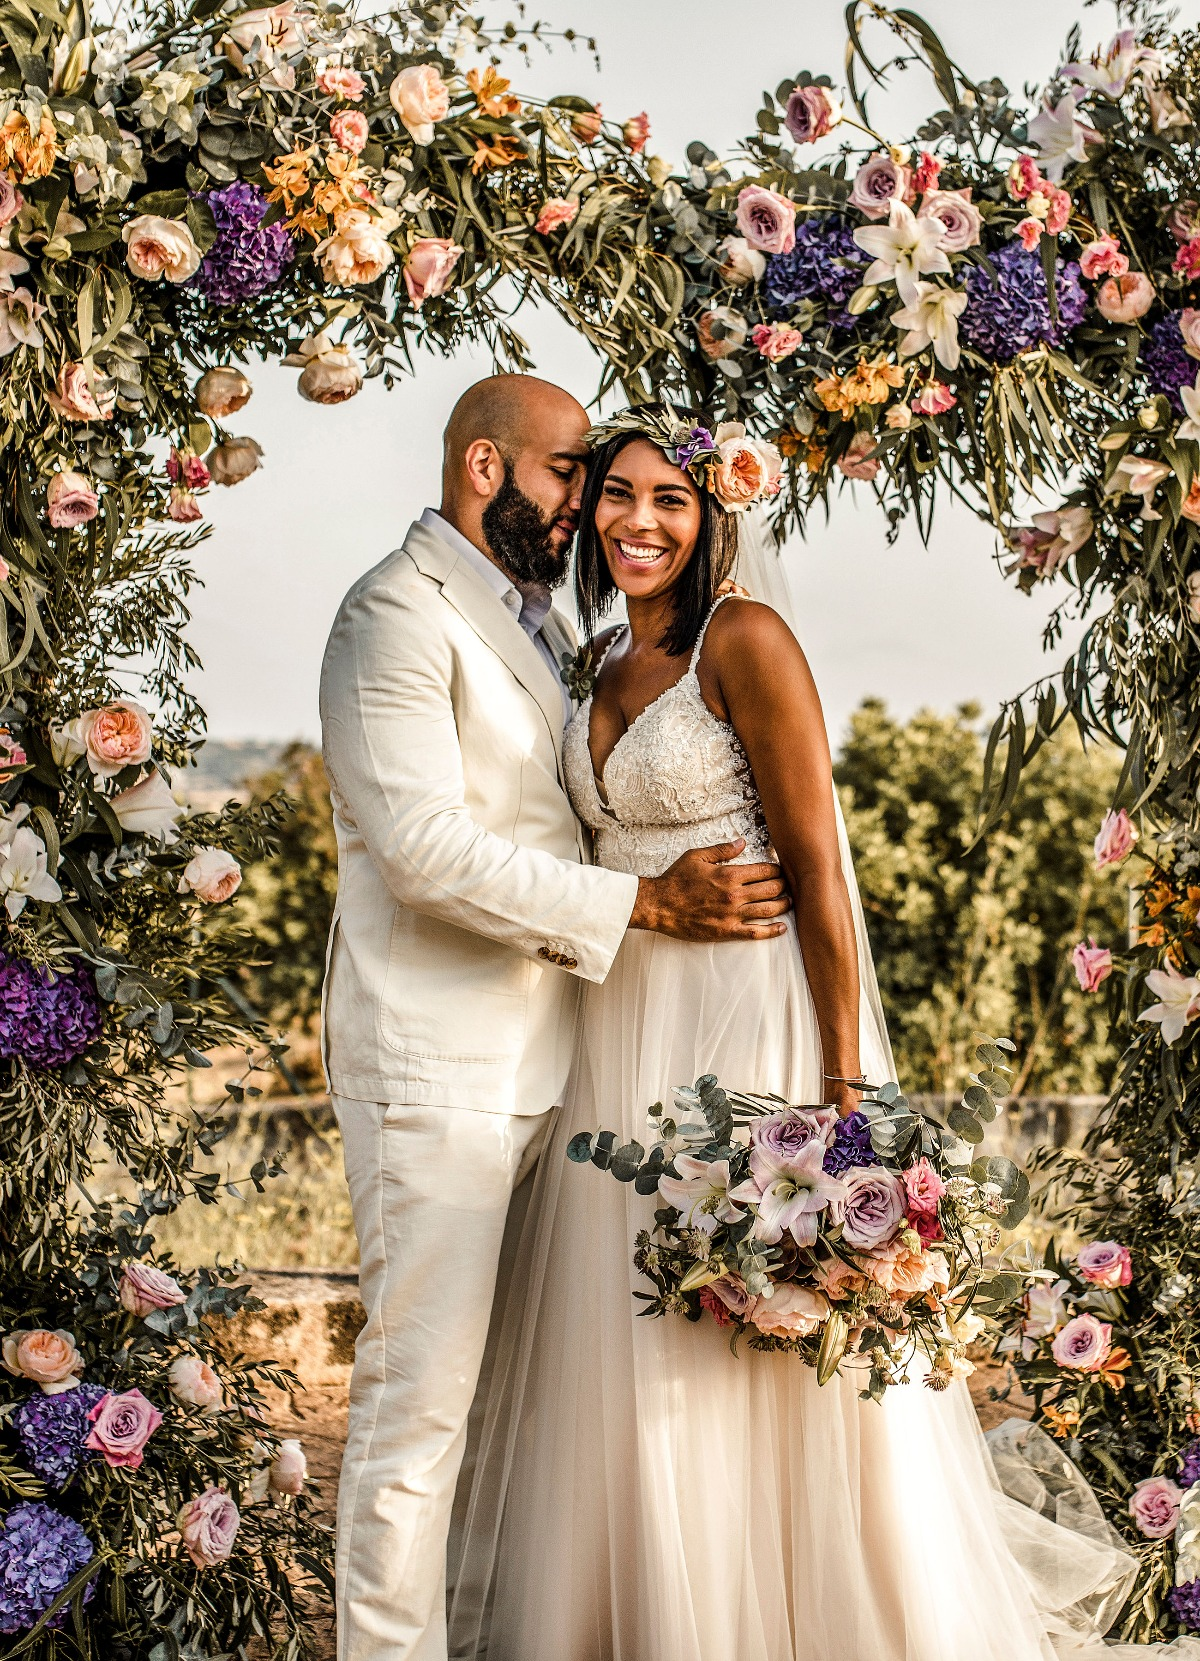 wedding couple with floral arch backdrop